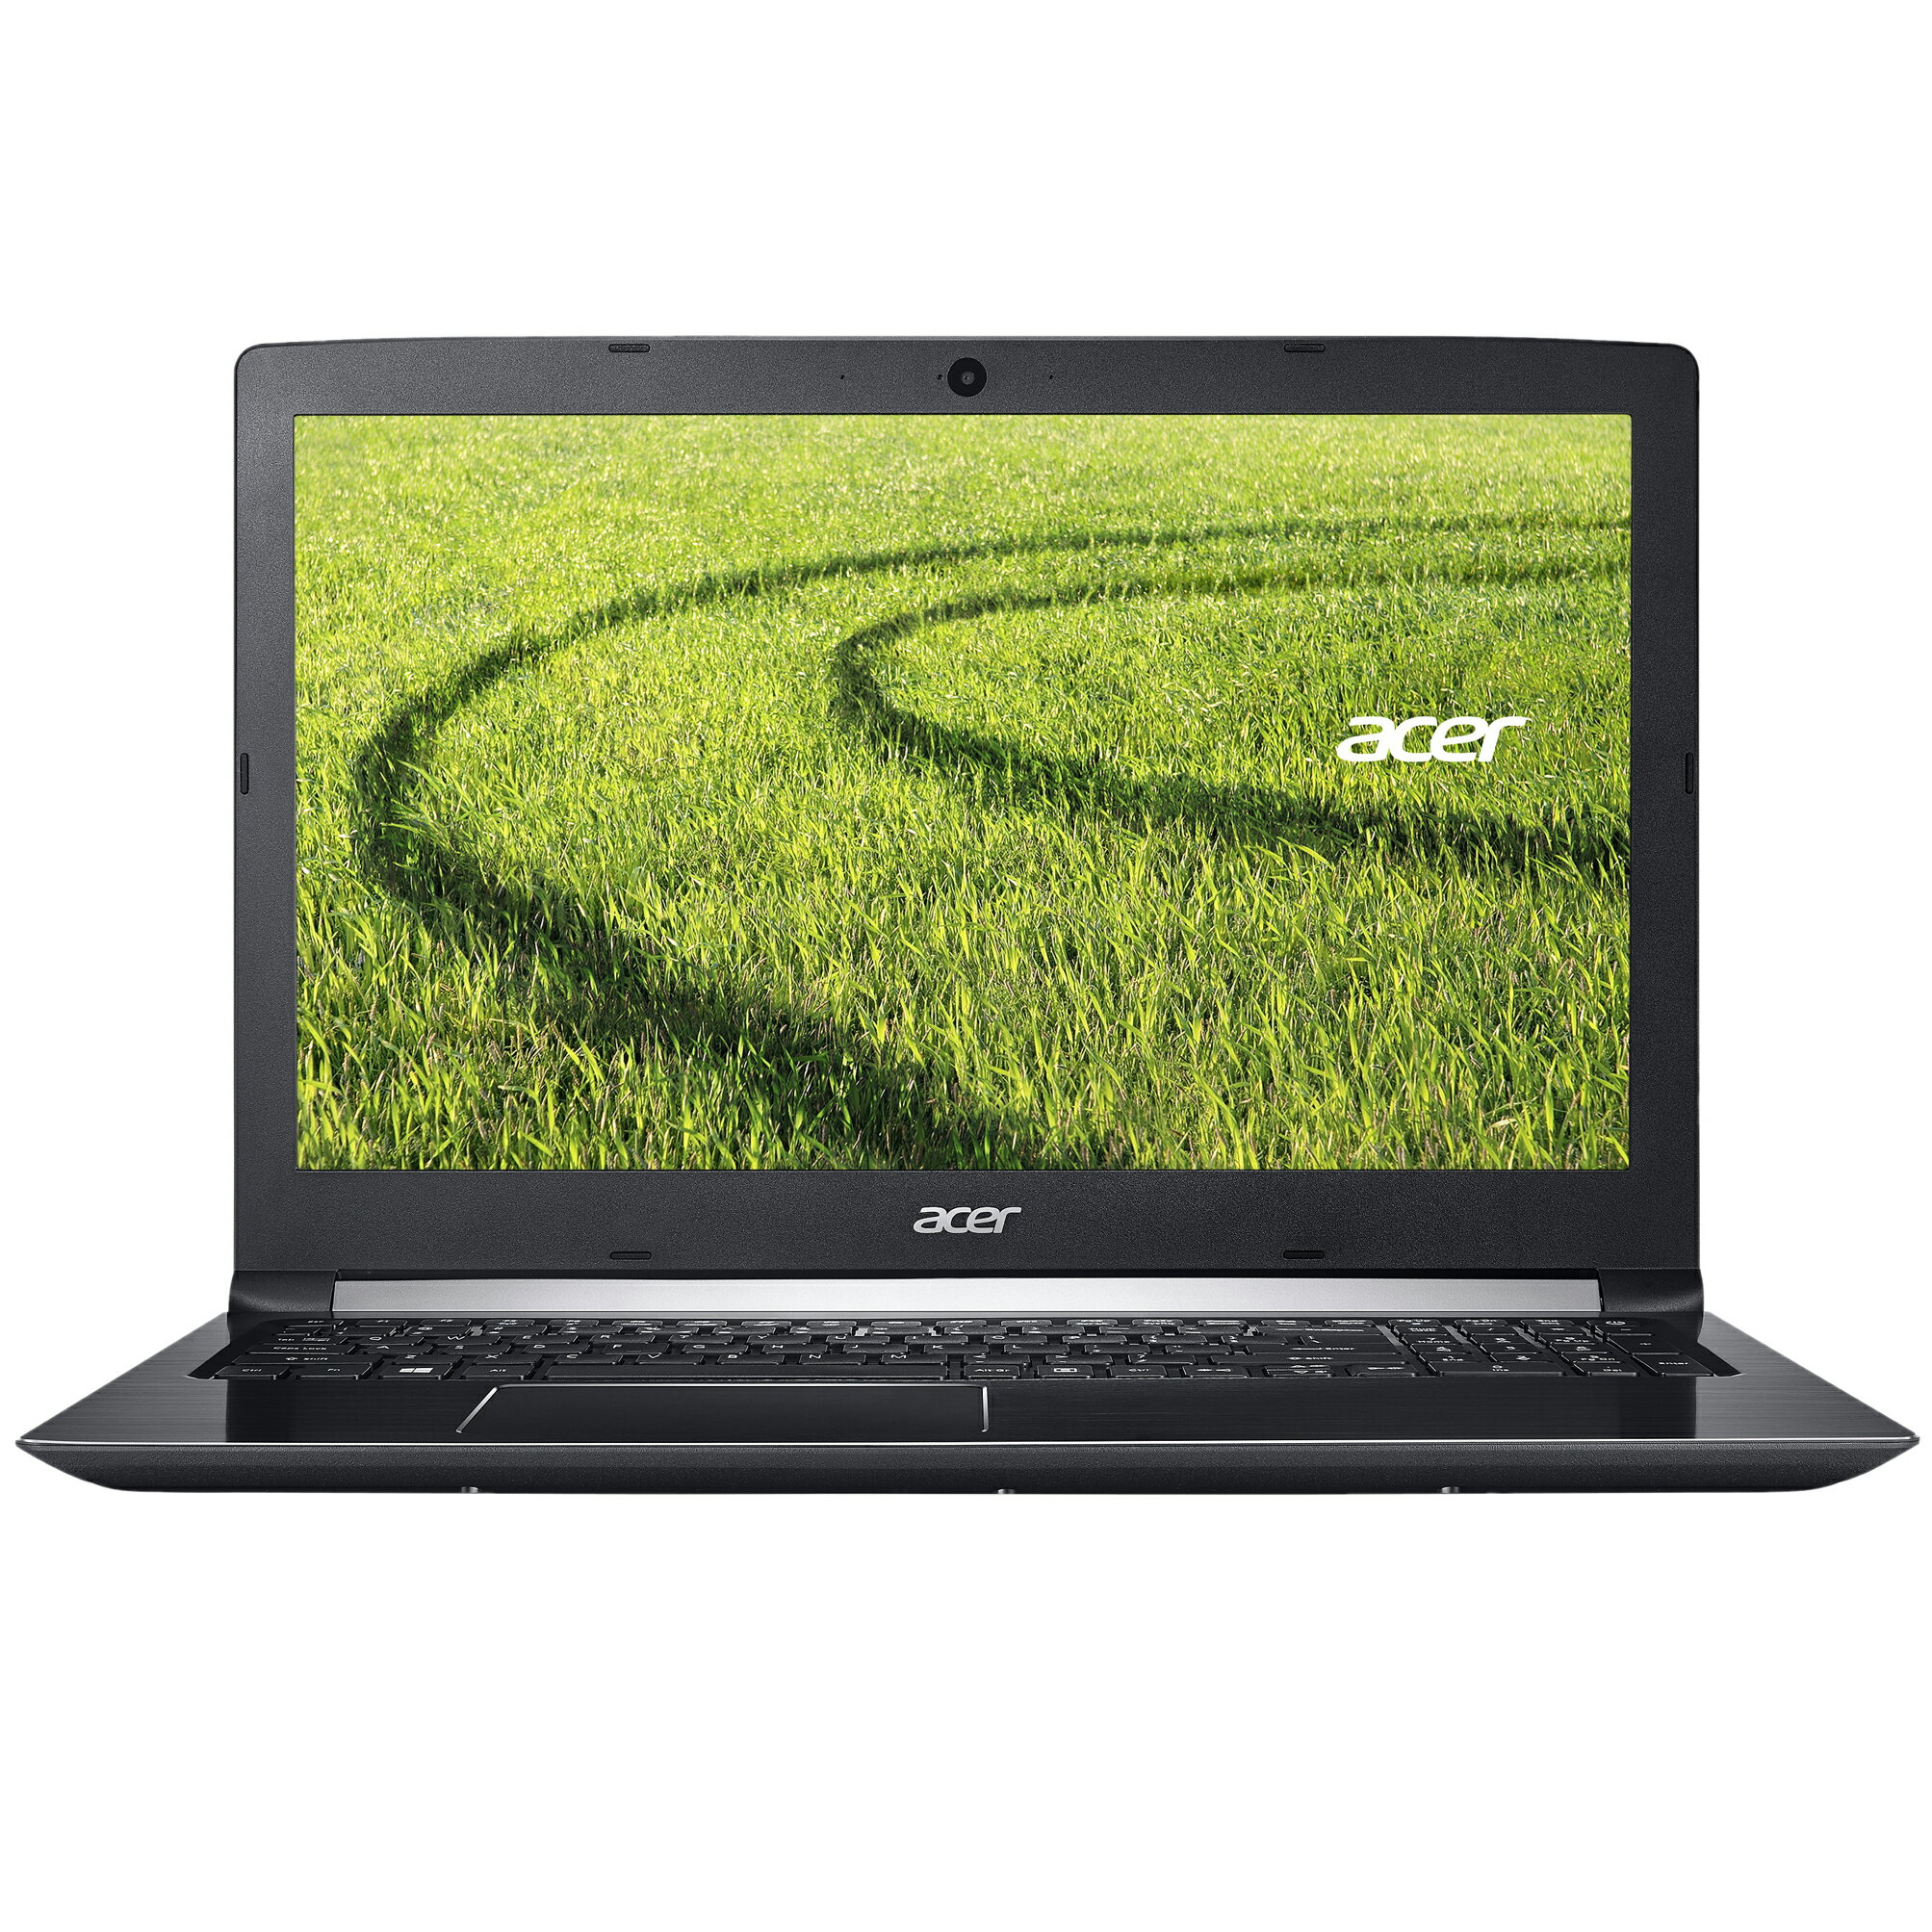 "Acer 15.6"" Aspire 5 Notebook Intel i5-7200U 2.50 GHz 8GB Ram 256GB SSD Win10Home 0"